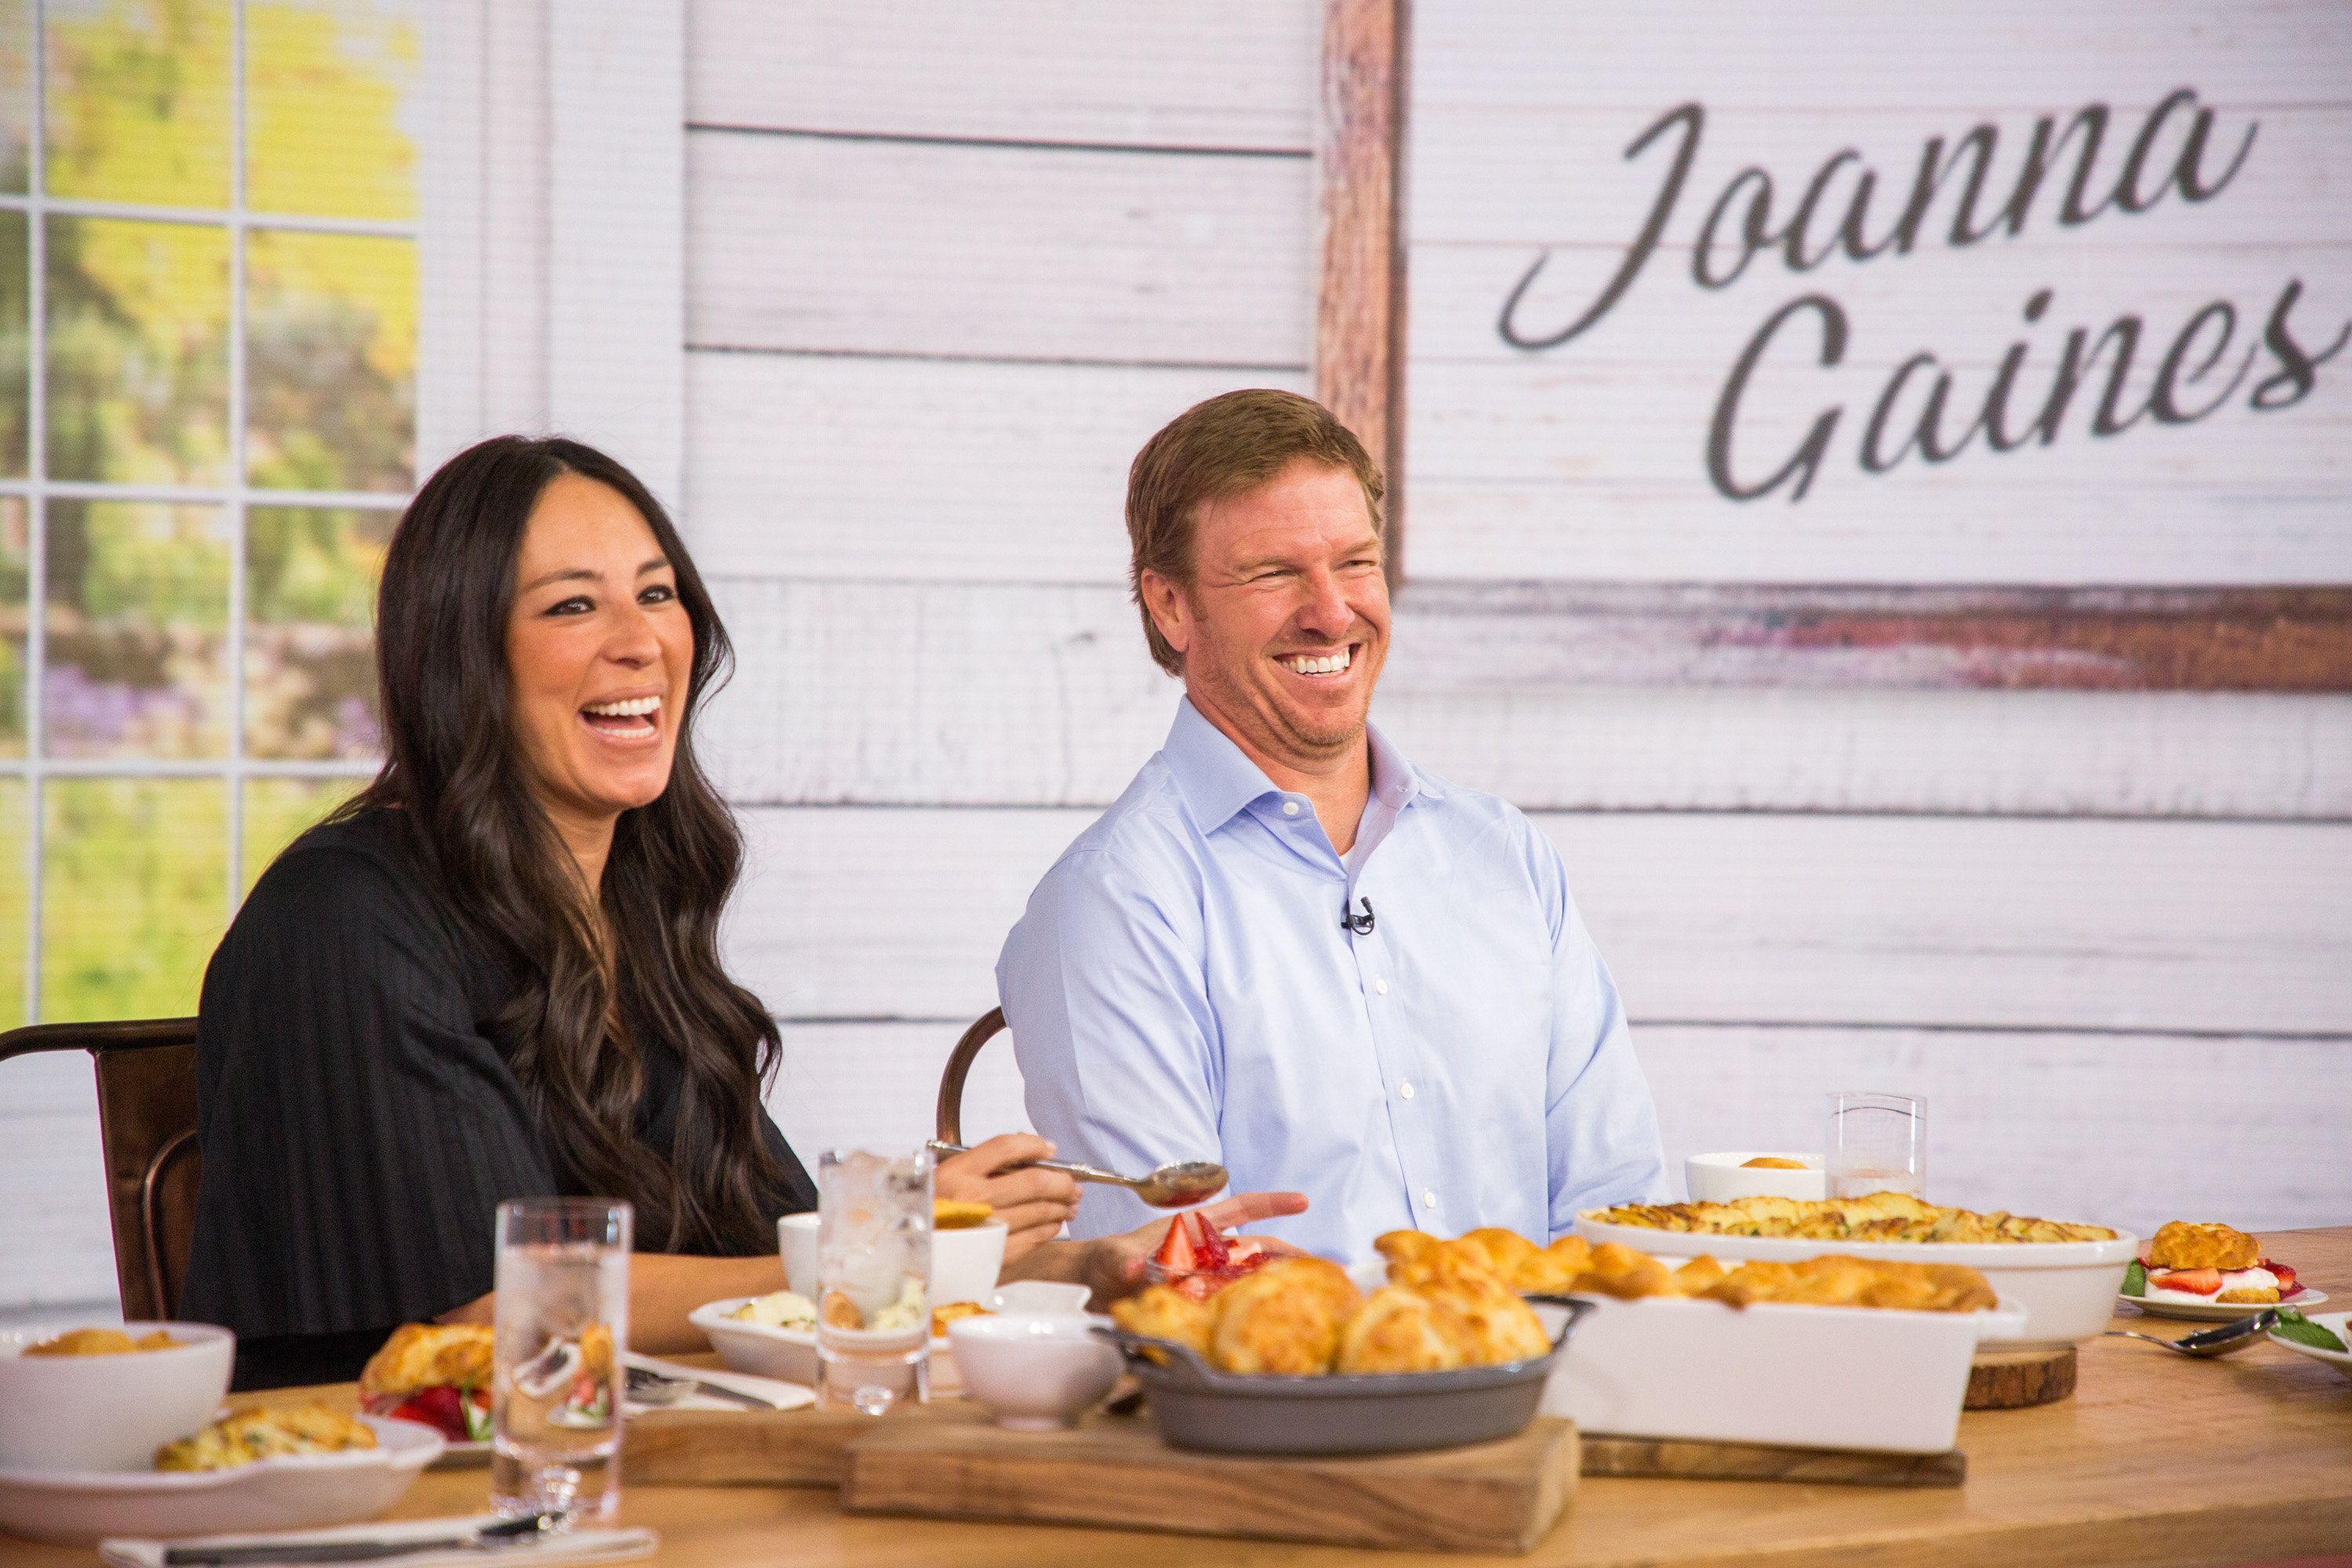 Joanna Gaines: My fifth pregnancy was a